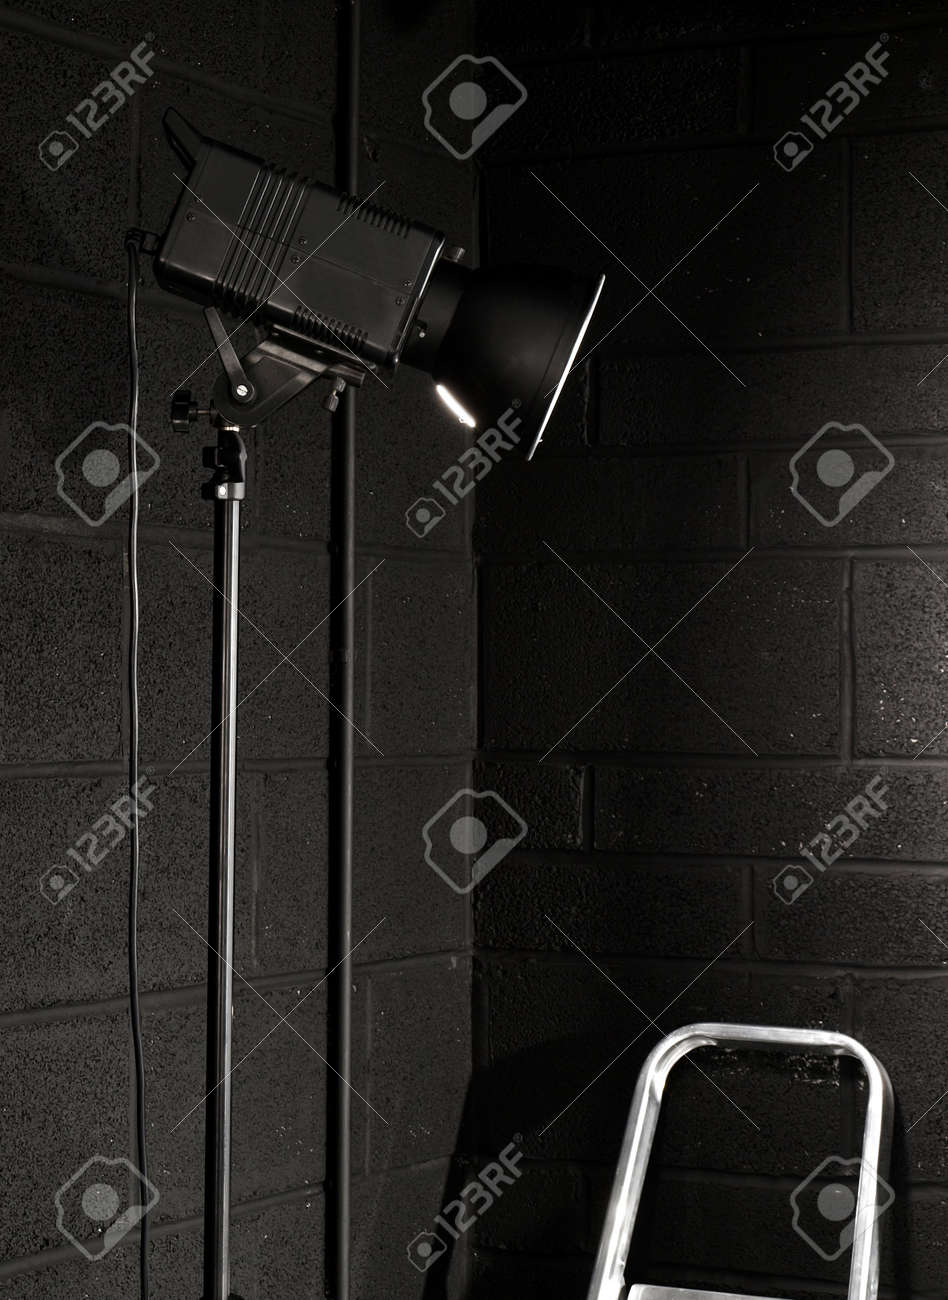 Photography studio light against a black brick wall background Stock Photo - 2973078